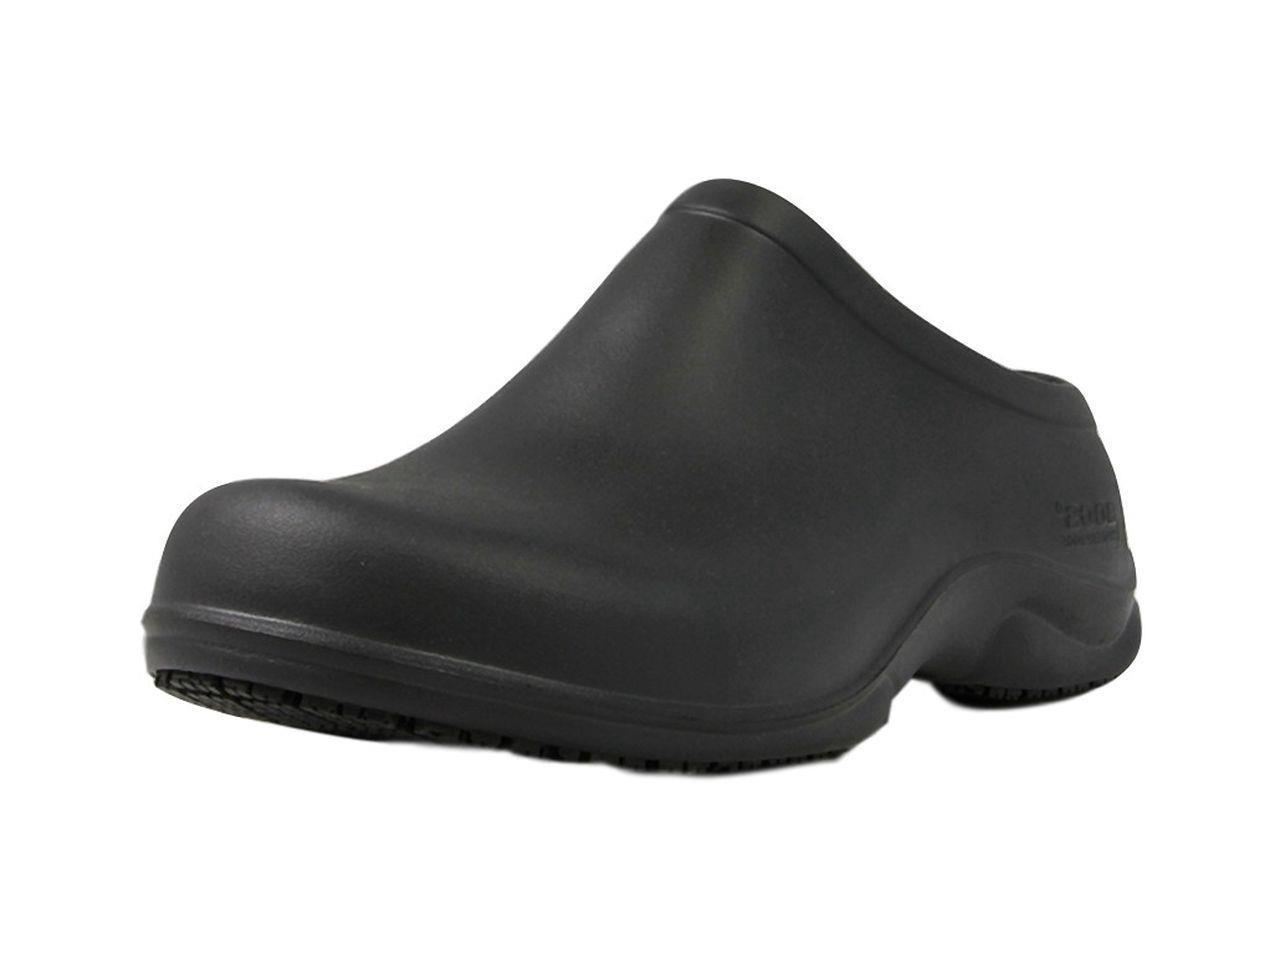 Bogs Outdoor Boots Boots Boots Mens Stewart WP Rubber Slip 13 M Black 71824 3610bc